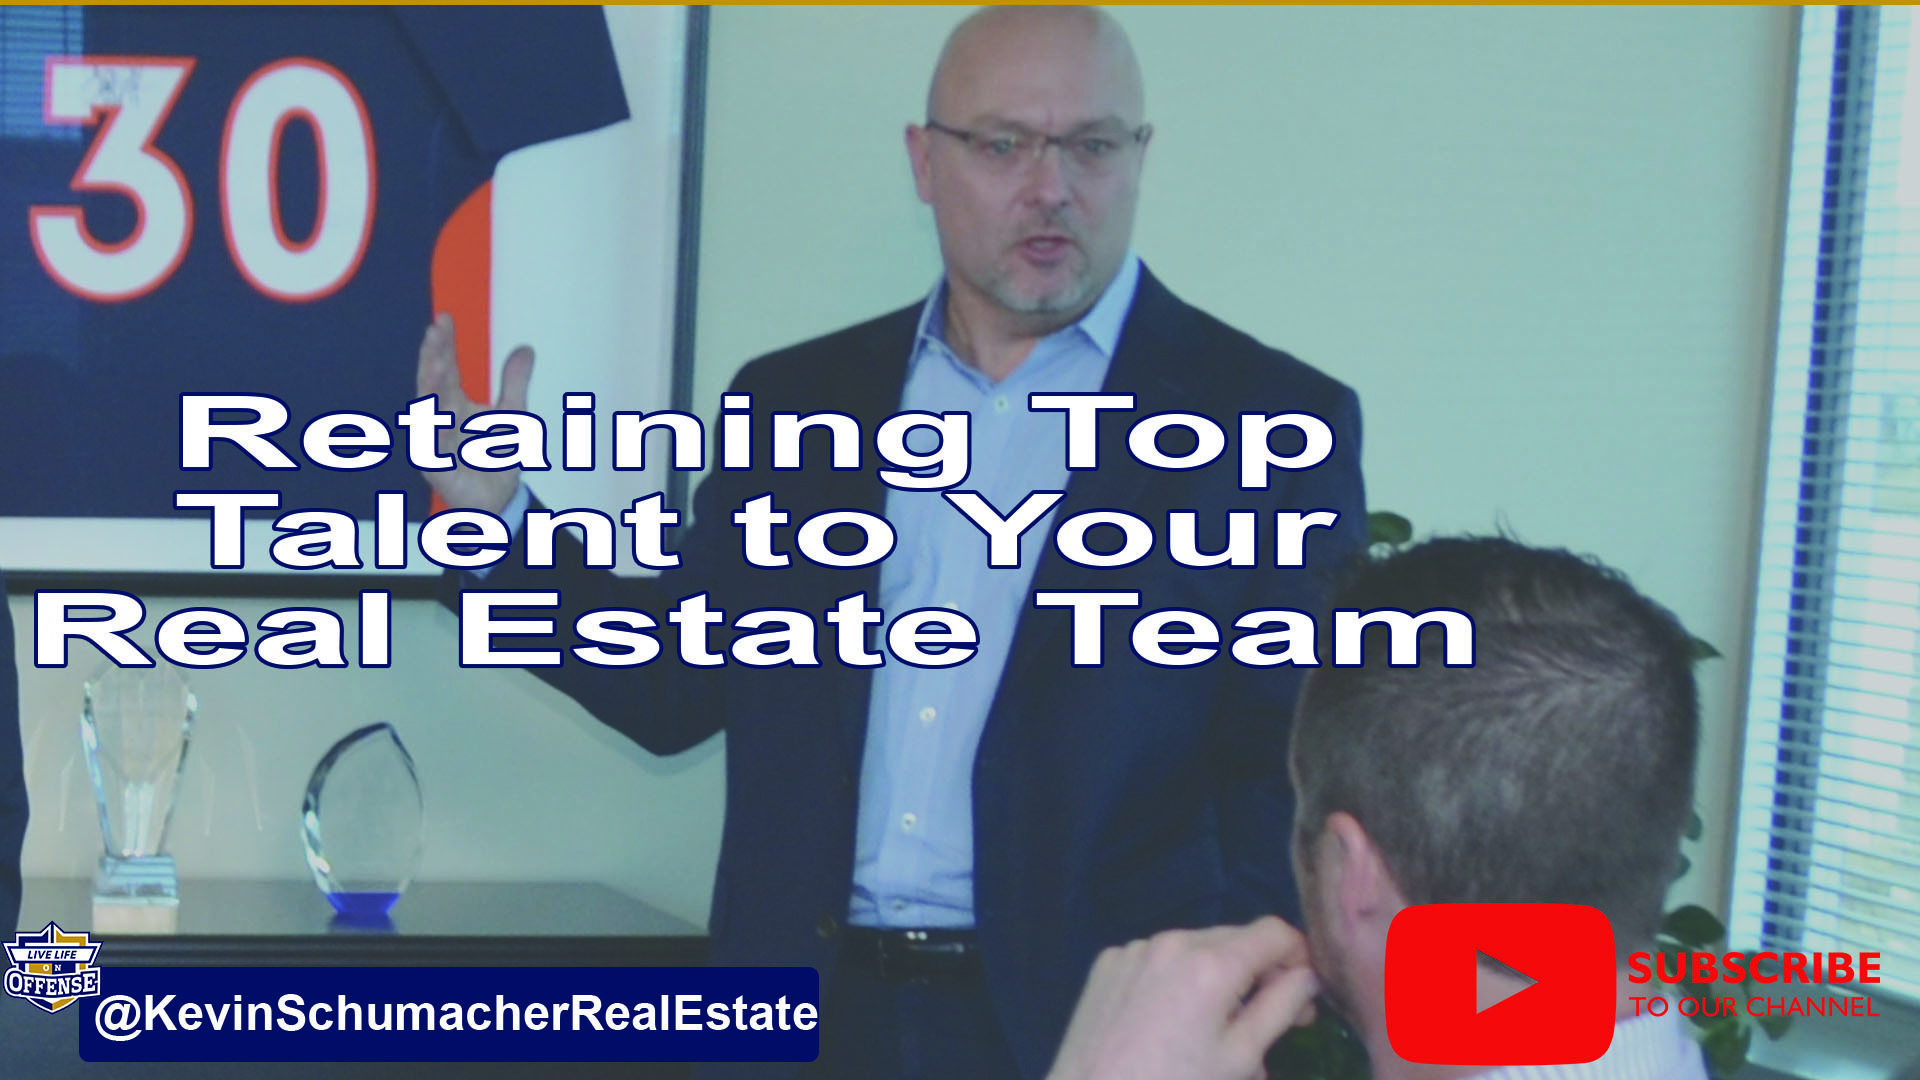 Retaining Top Talent to Your Real Estate Team